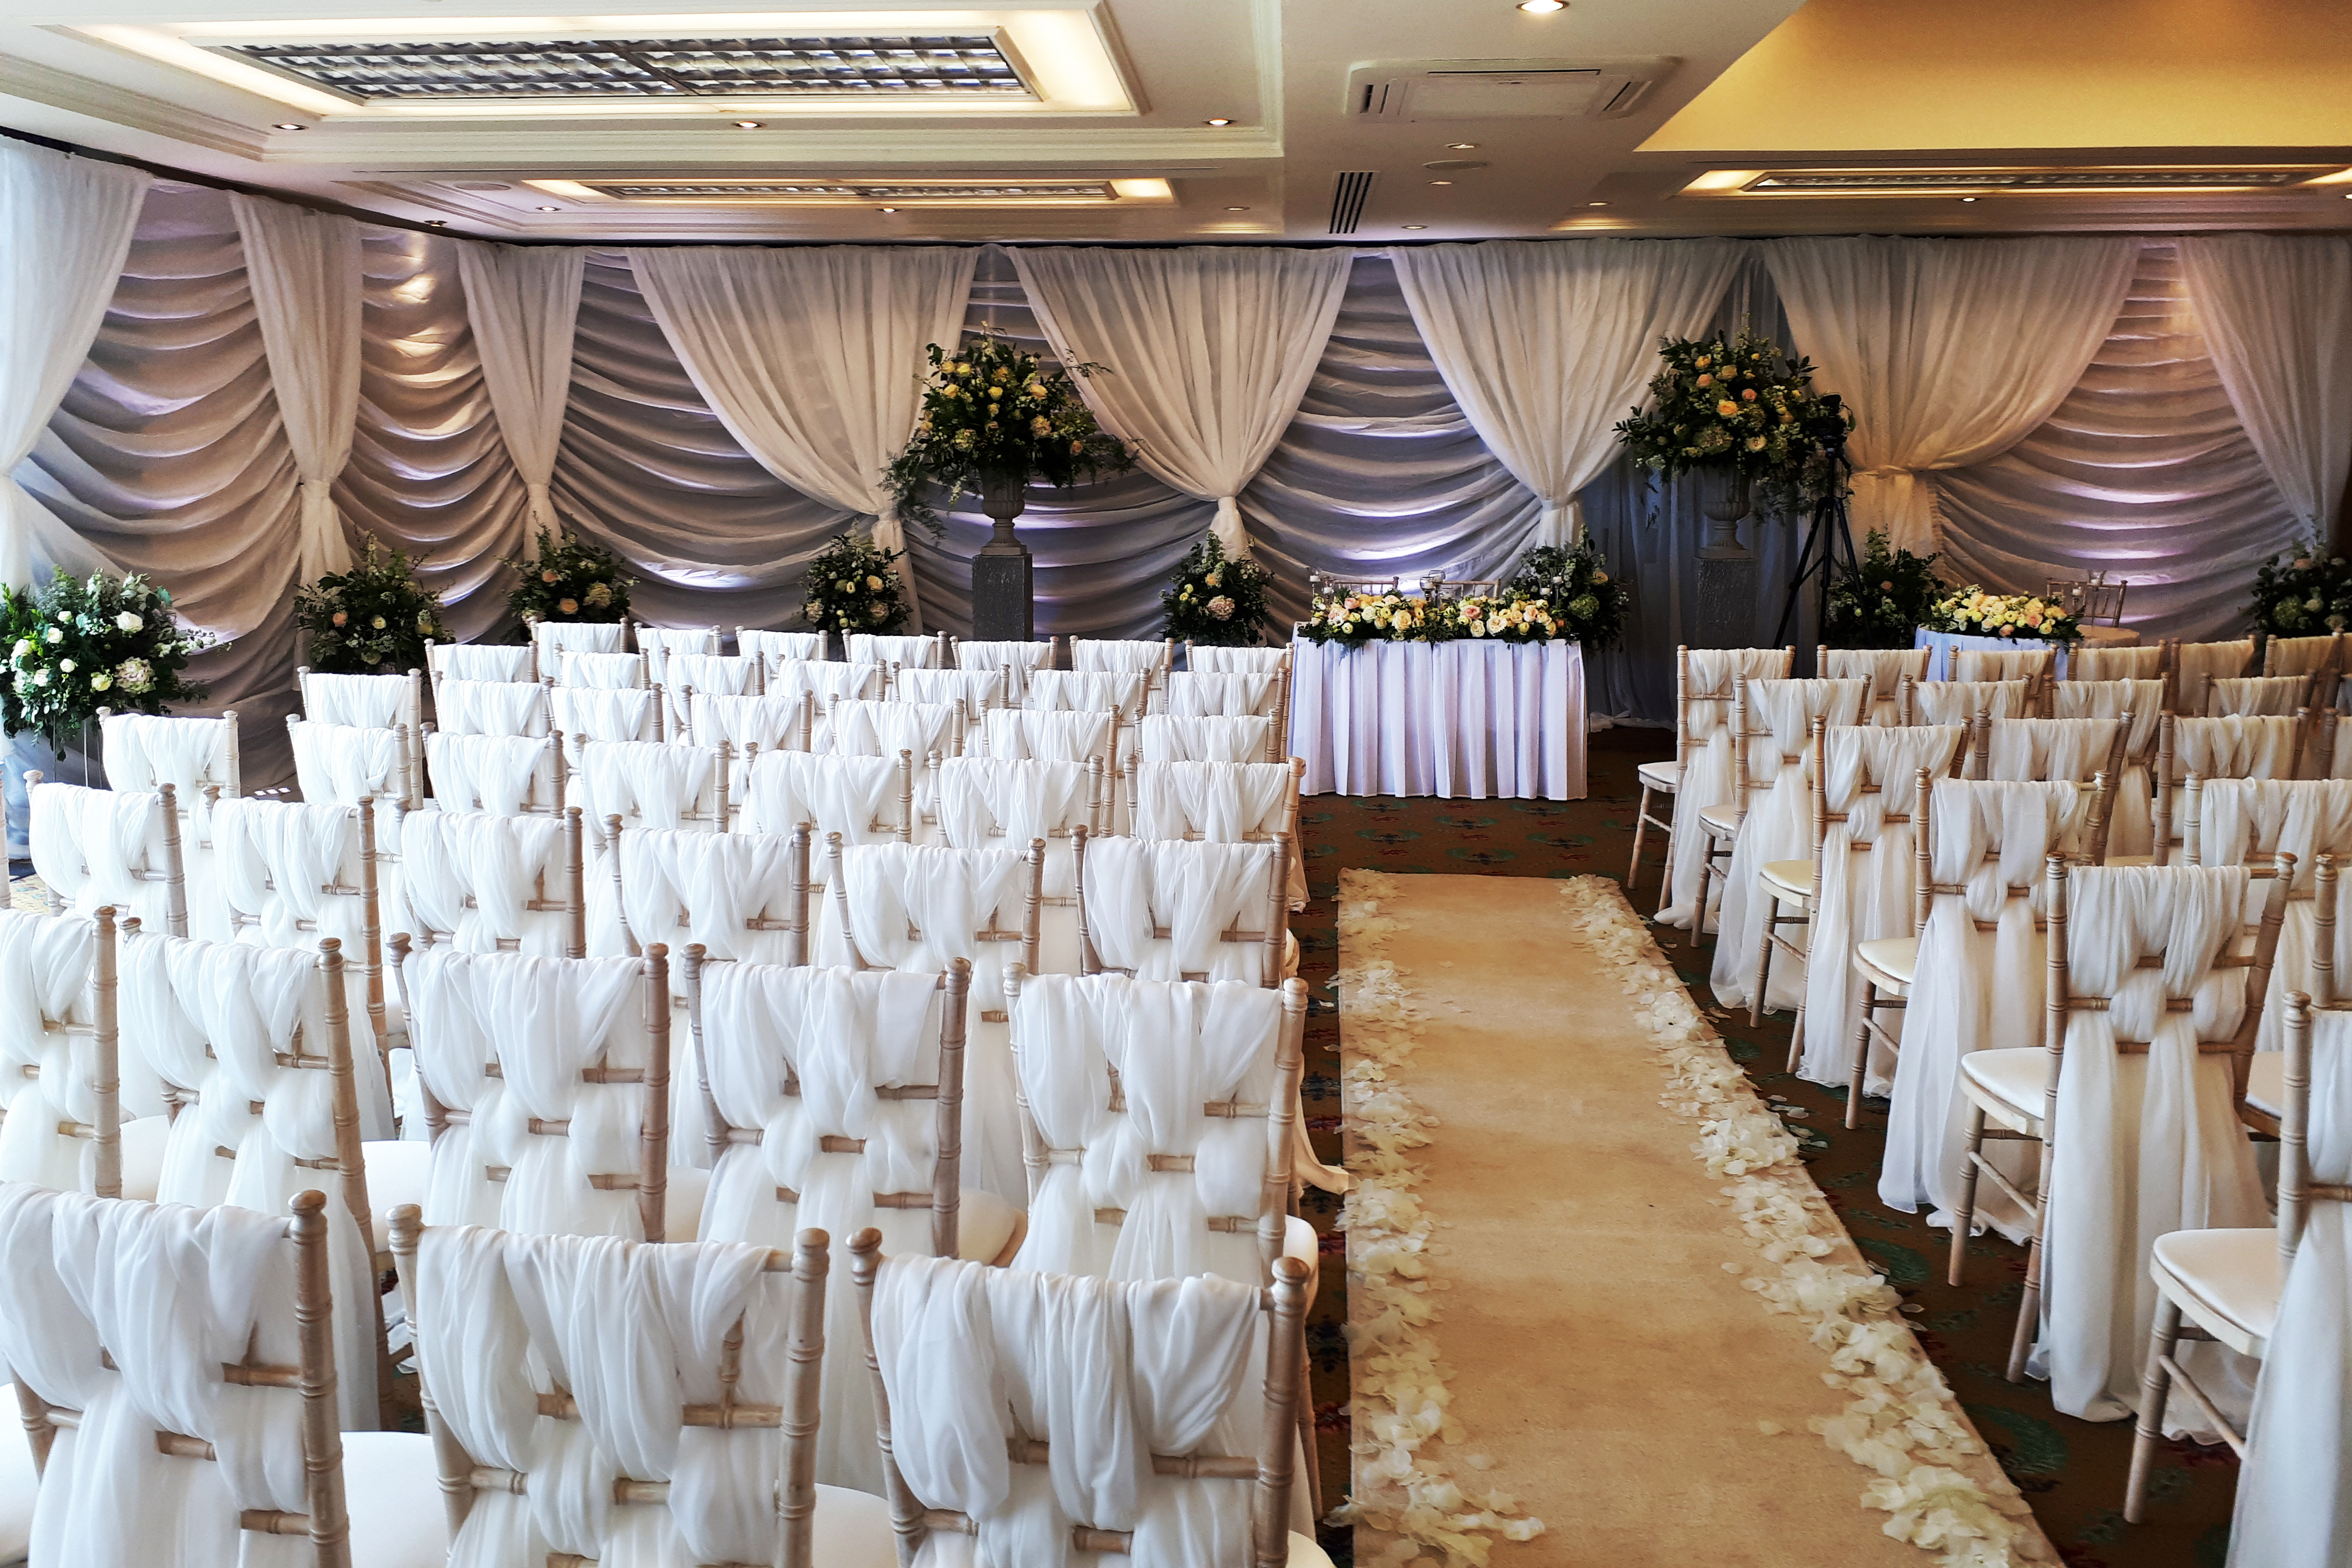 Wall drapes for weddings